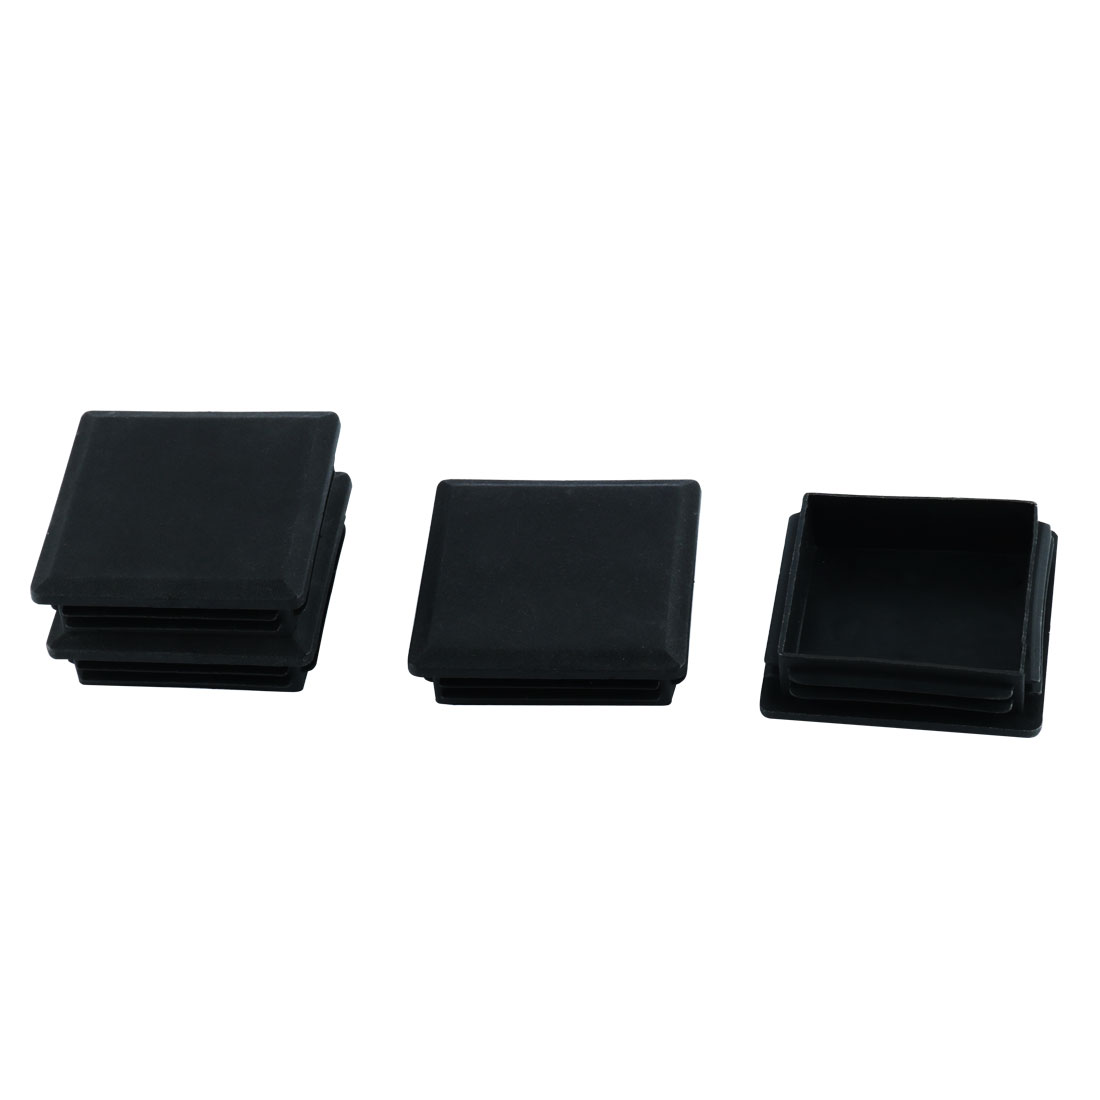 Home Table Chair Leg Protector Plastic Square Tube Pipe Feet Insert Cap Black 80mm x 80mm 4 Pcs